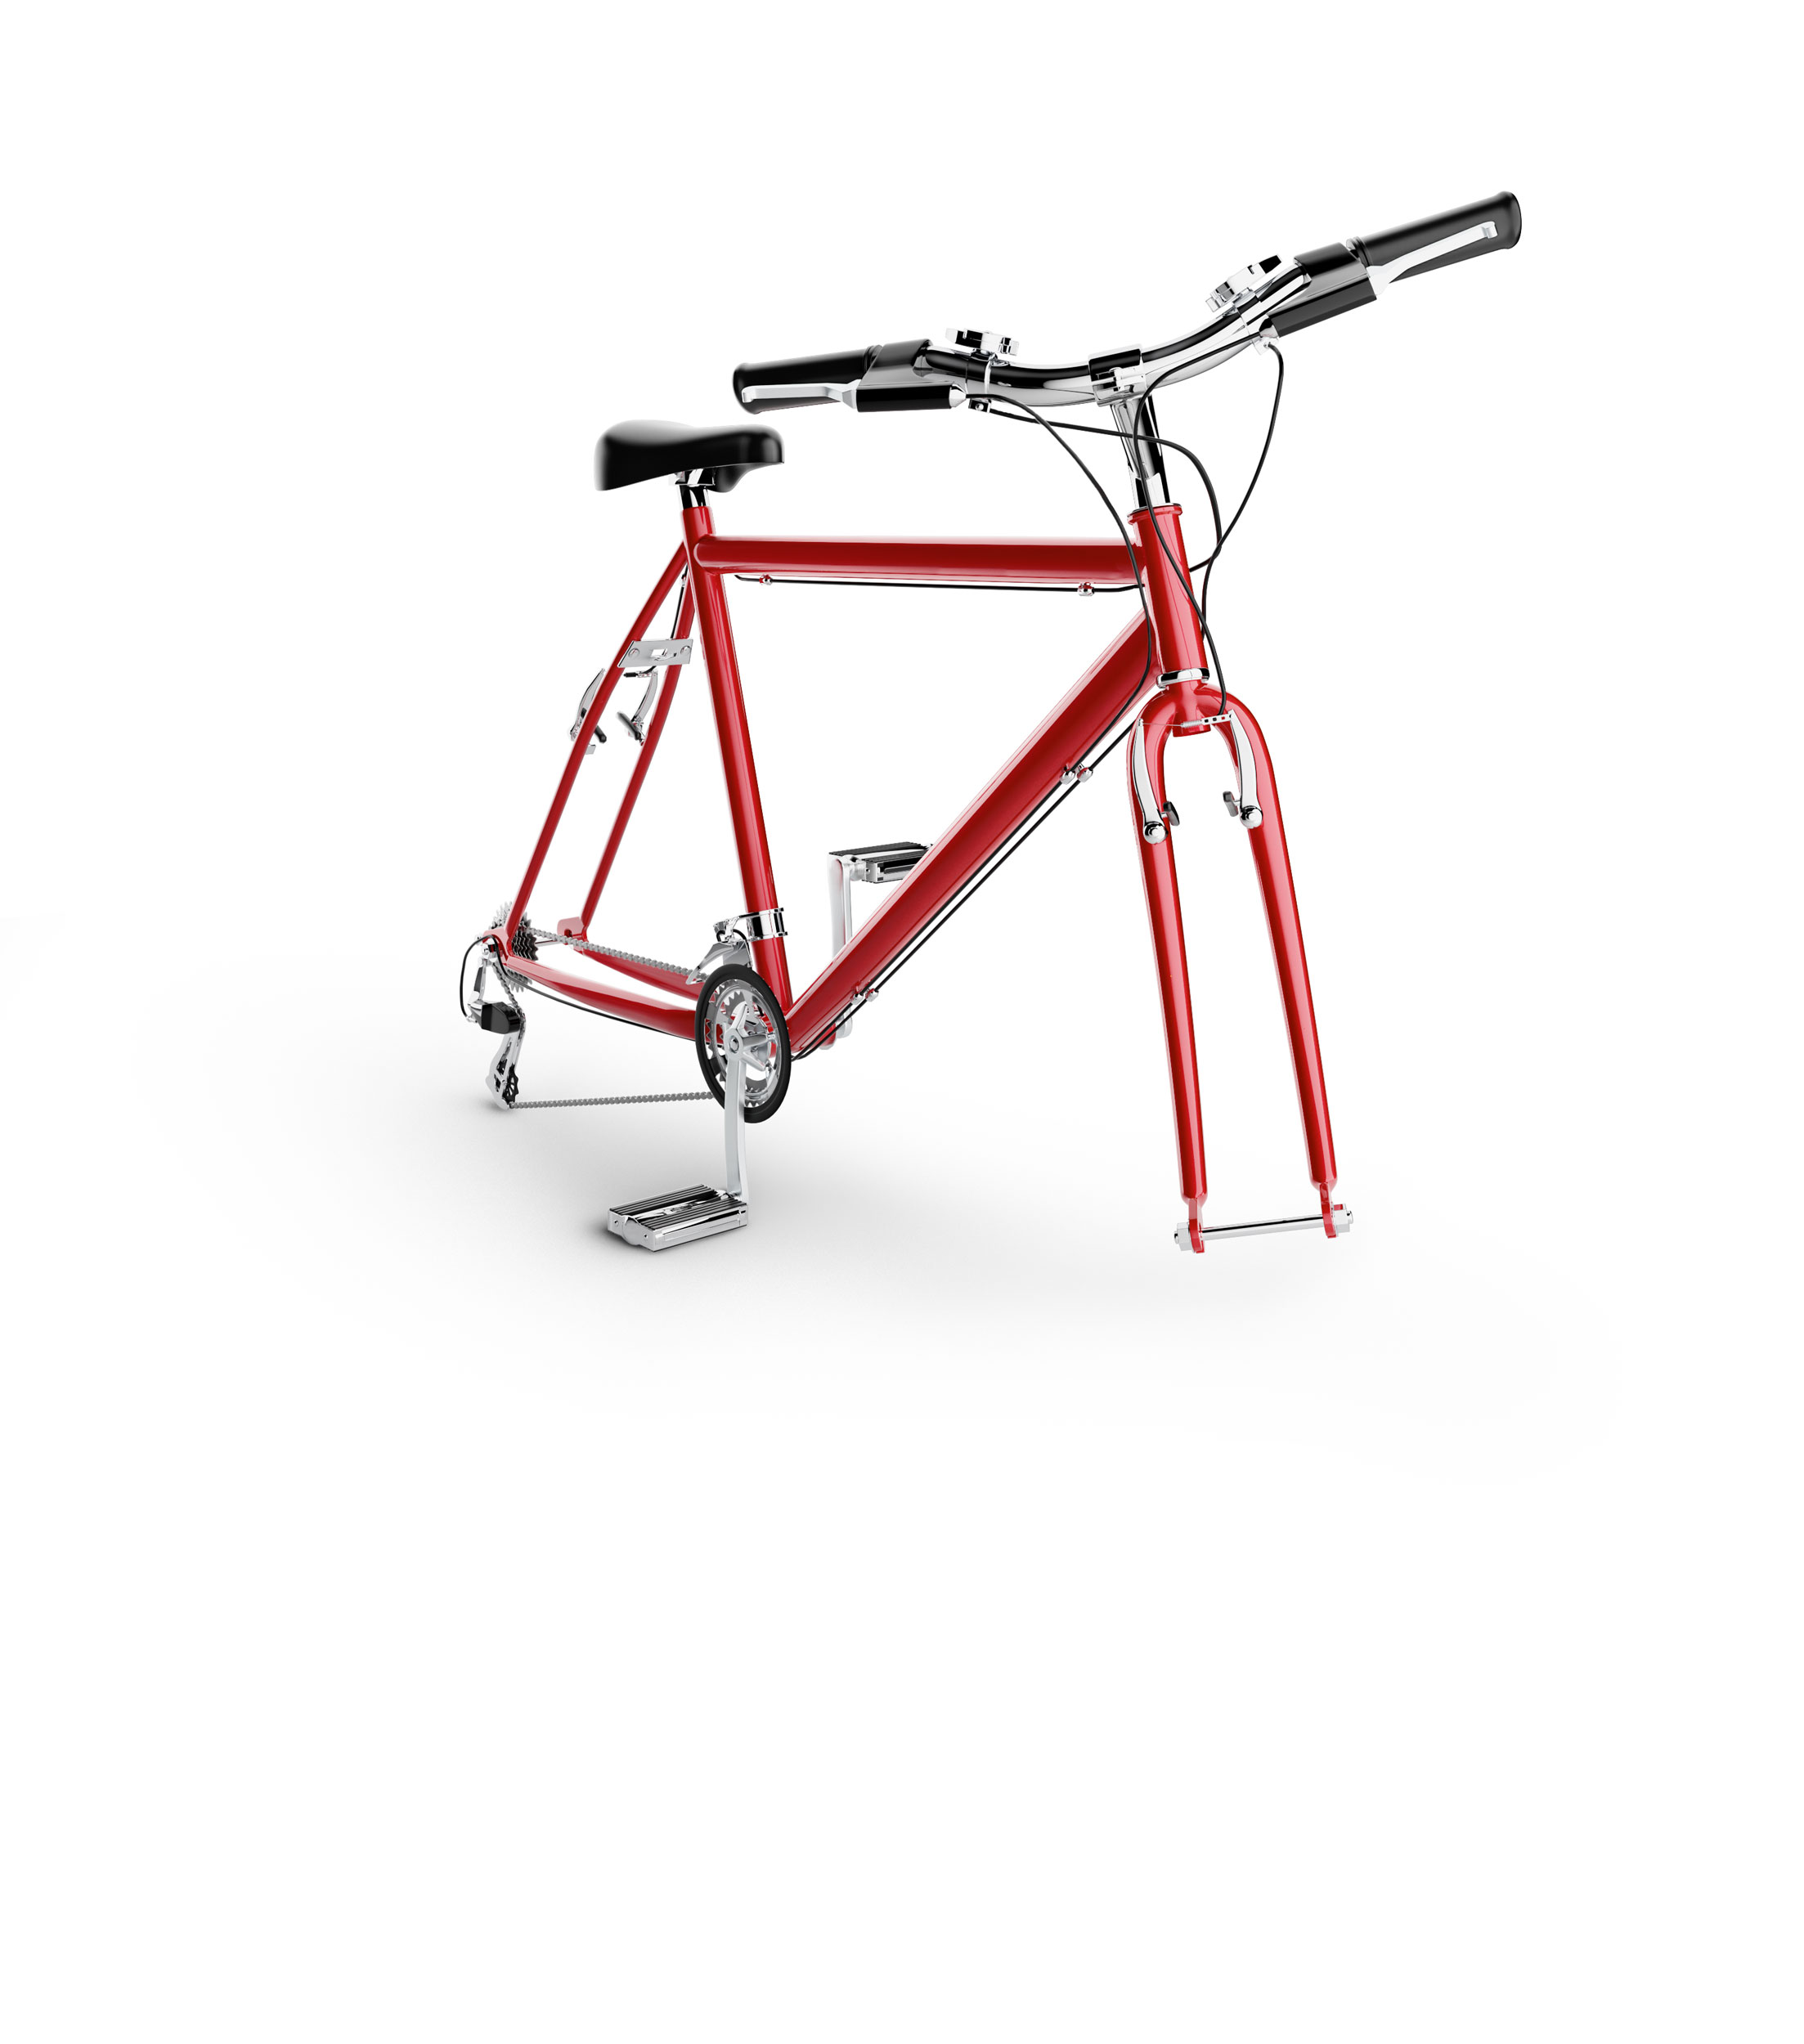 computer generated image of bike frame